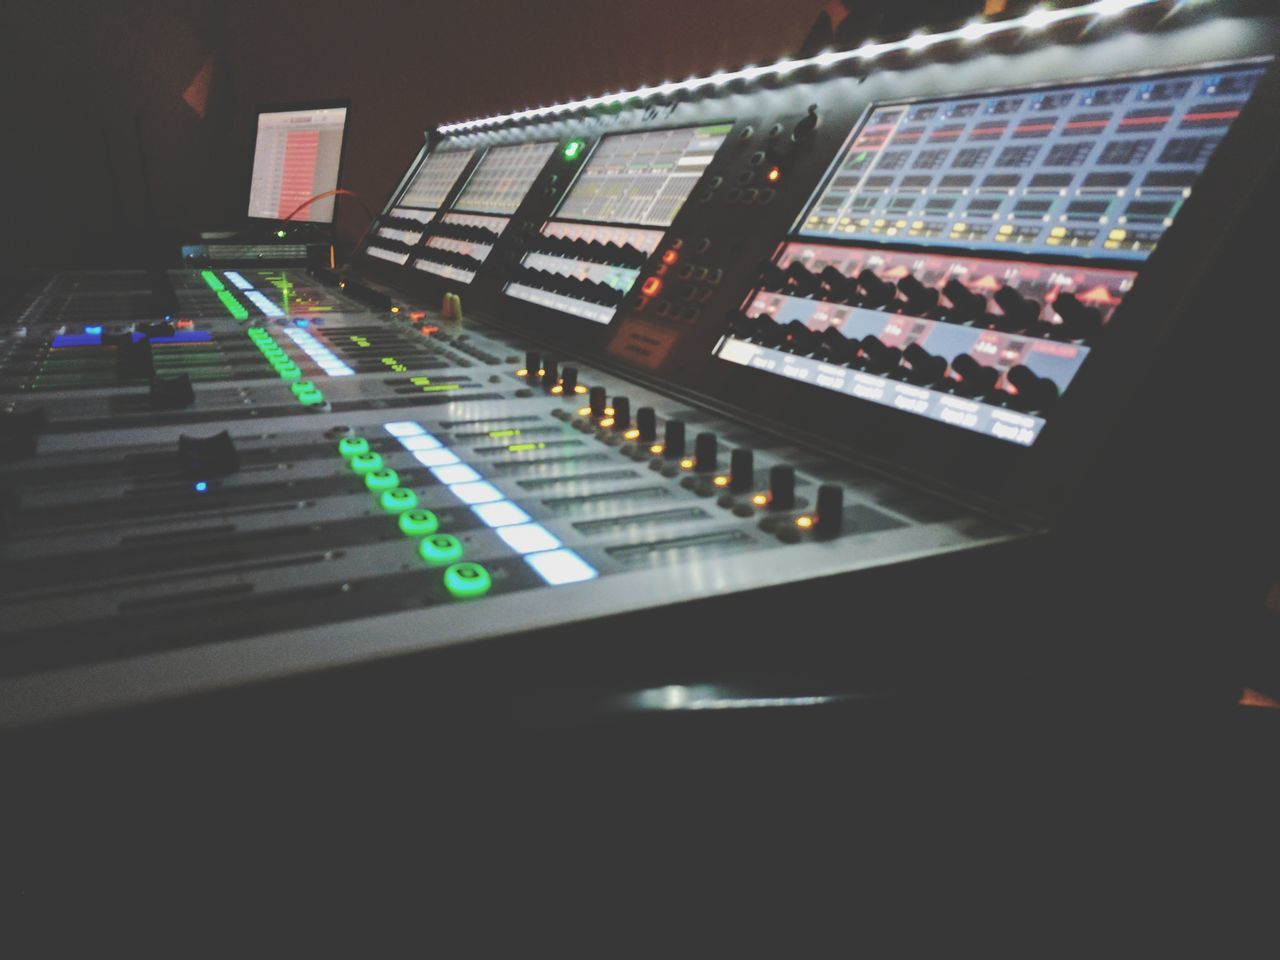 Sound Mixer Music Sound Recording Equipment Mixing Arts Culture And Entertainment Technology Audio Equipment Recording Studio Studio Control Panel Illuminated Indoors  Nightclub No People Night Close-up